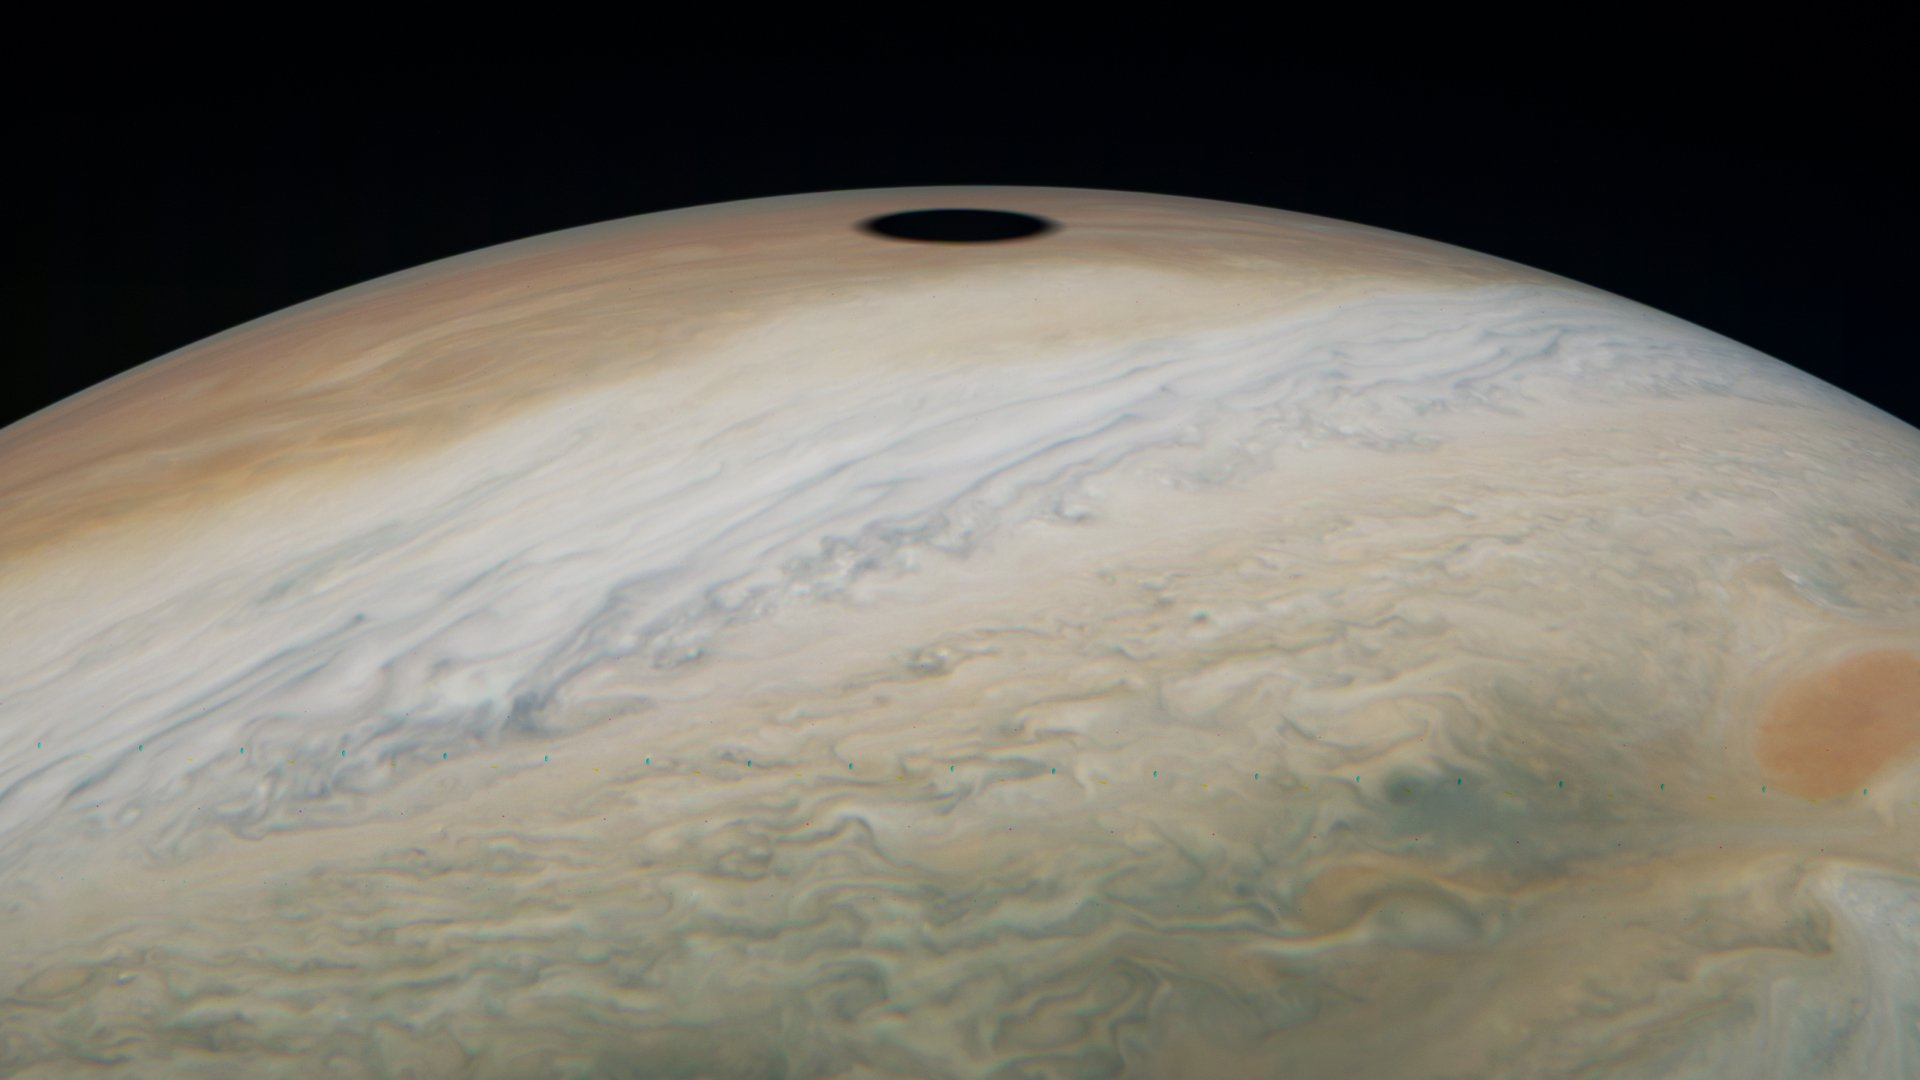 The shadow of Jupiter's moon Io is captured by @NASAJuno on the recent 22nd perijove. [ Eichstadt ] https://t.co/kI4x3a4yVe